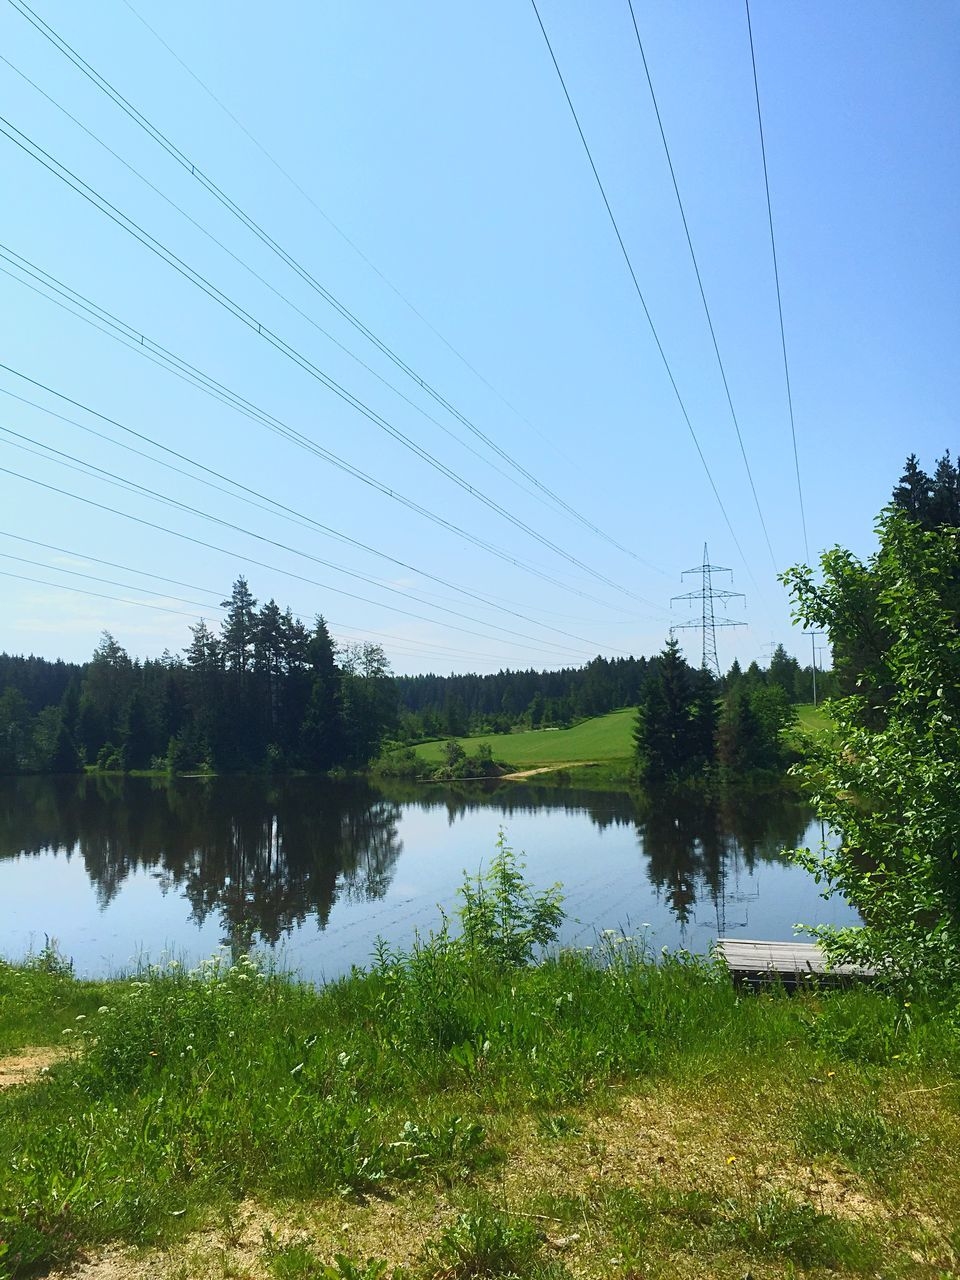 Tranquil View Of Lake Against Power Cables And Clear Sky